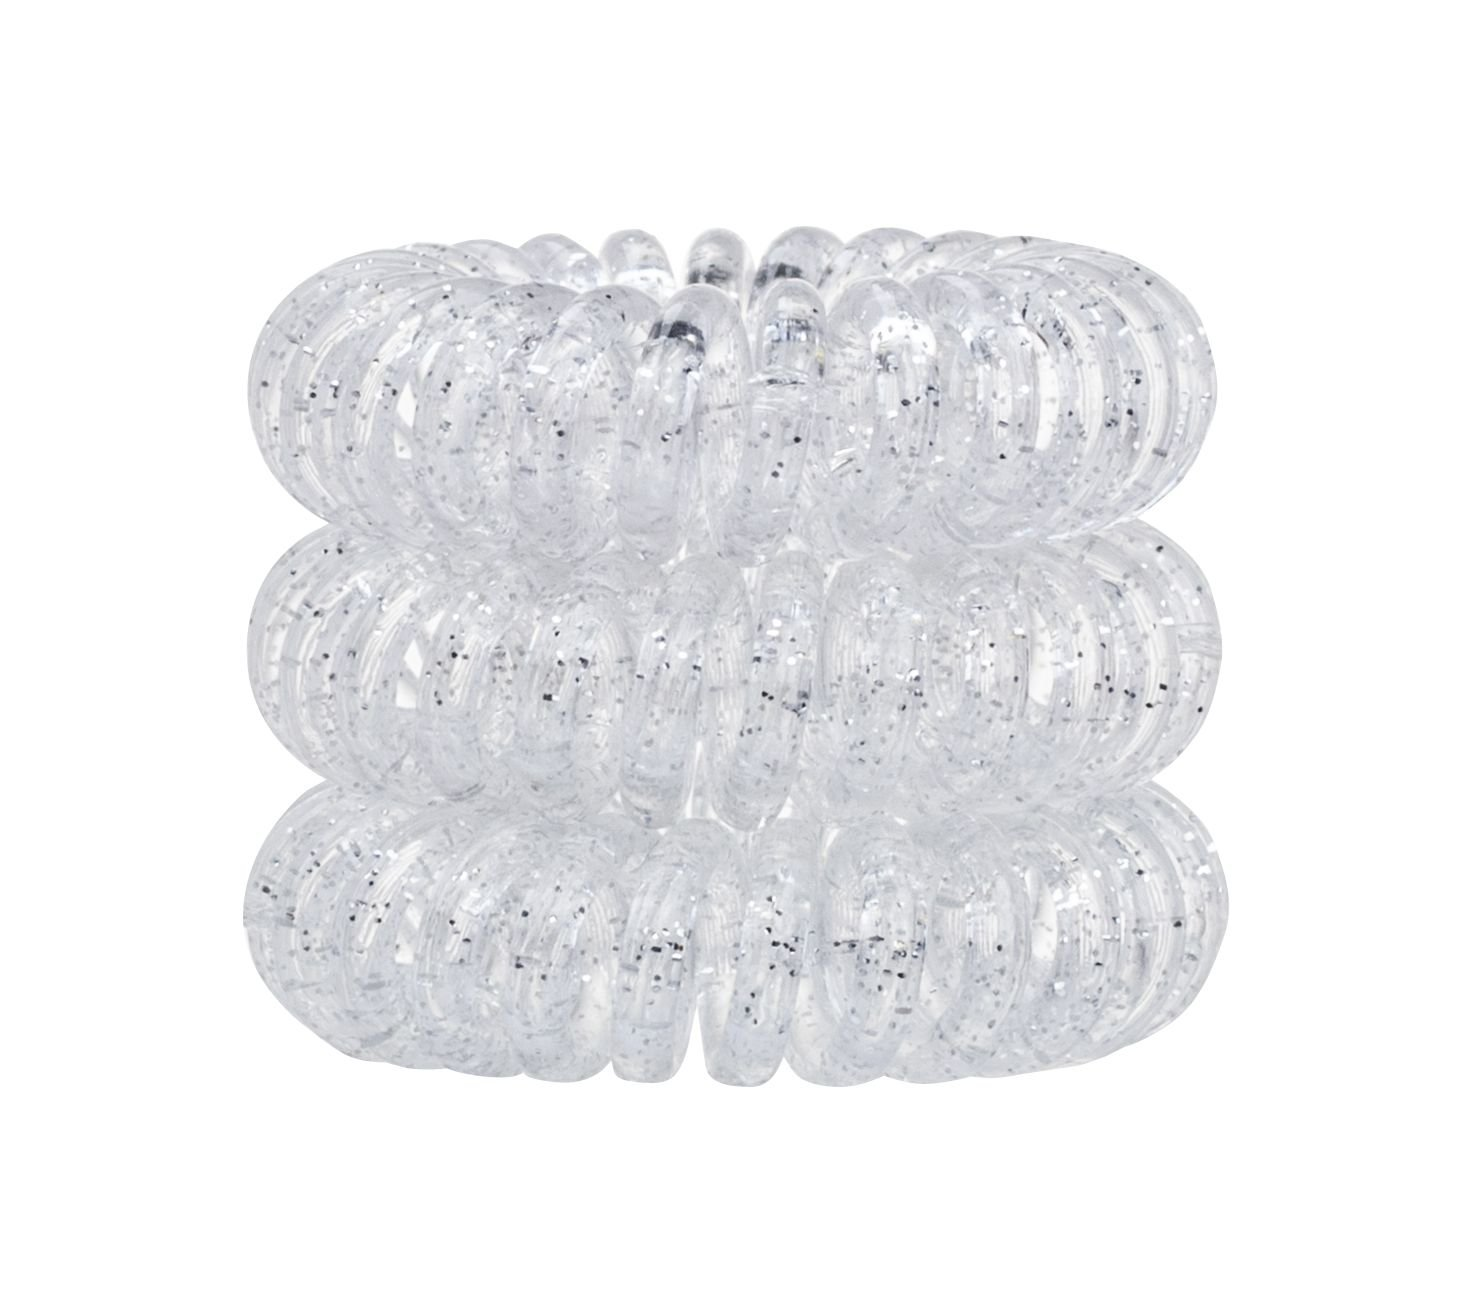 Invisibobble Hair Ring Cosmetic 3pcs Sparkling Clear